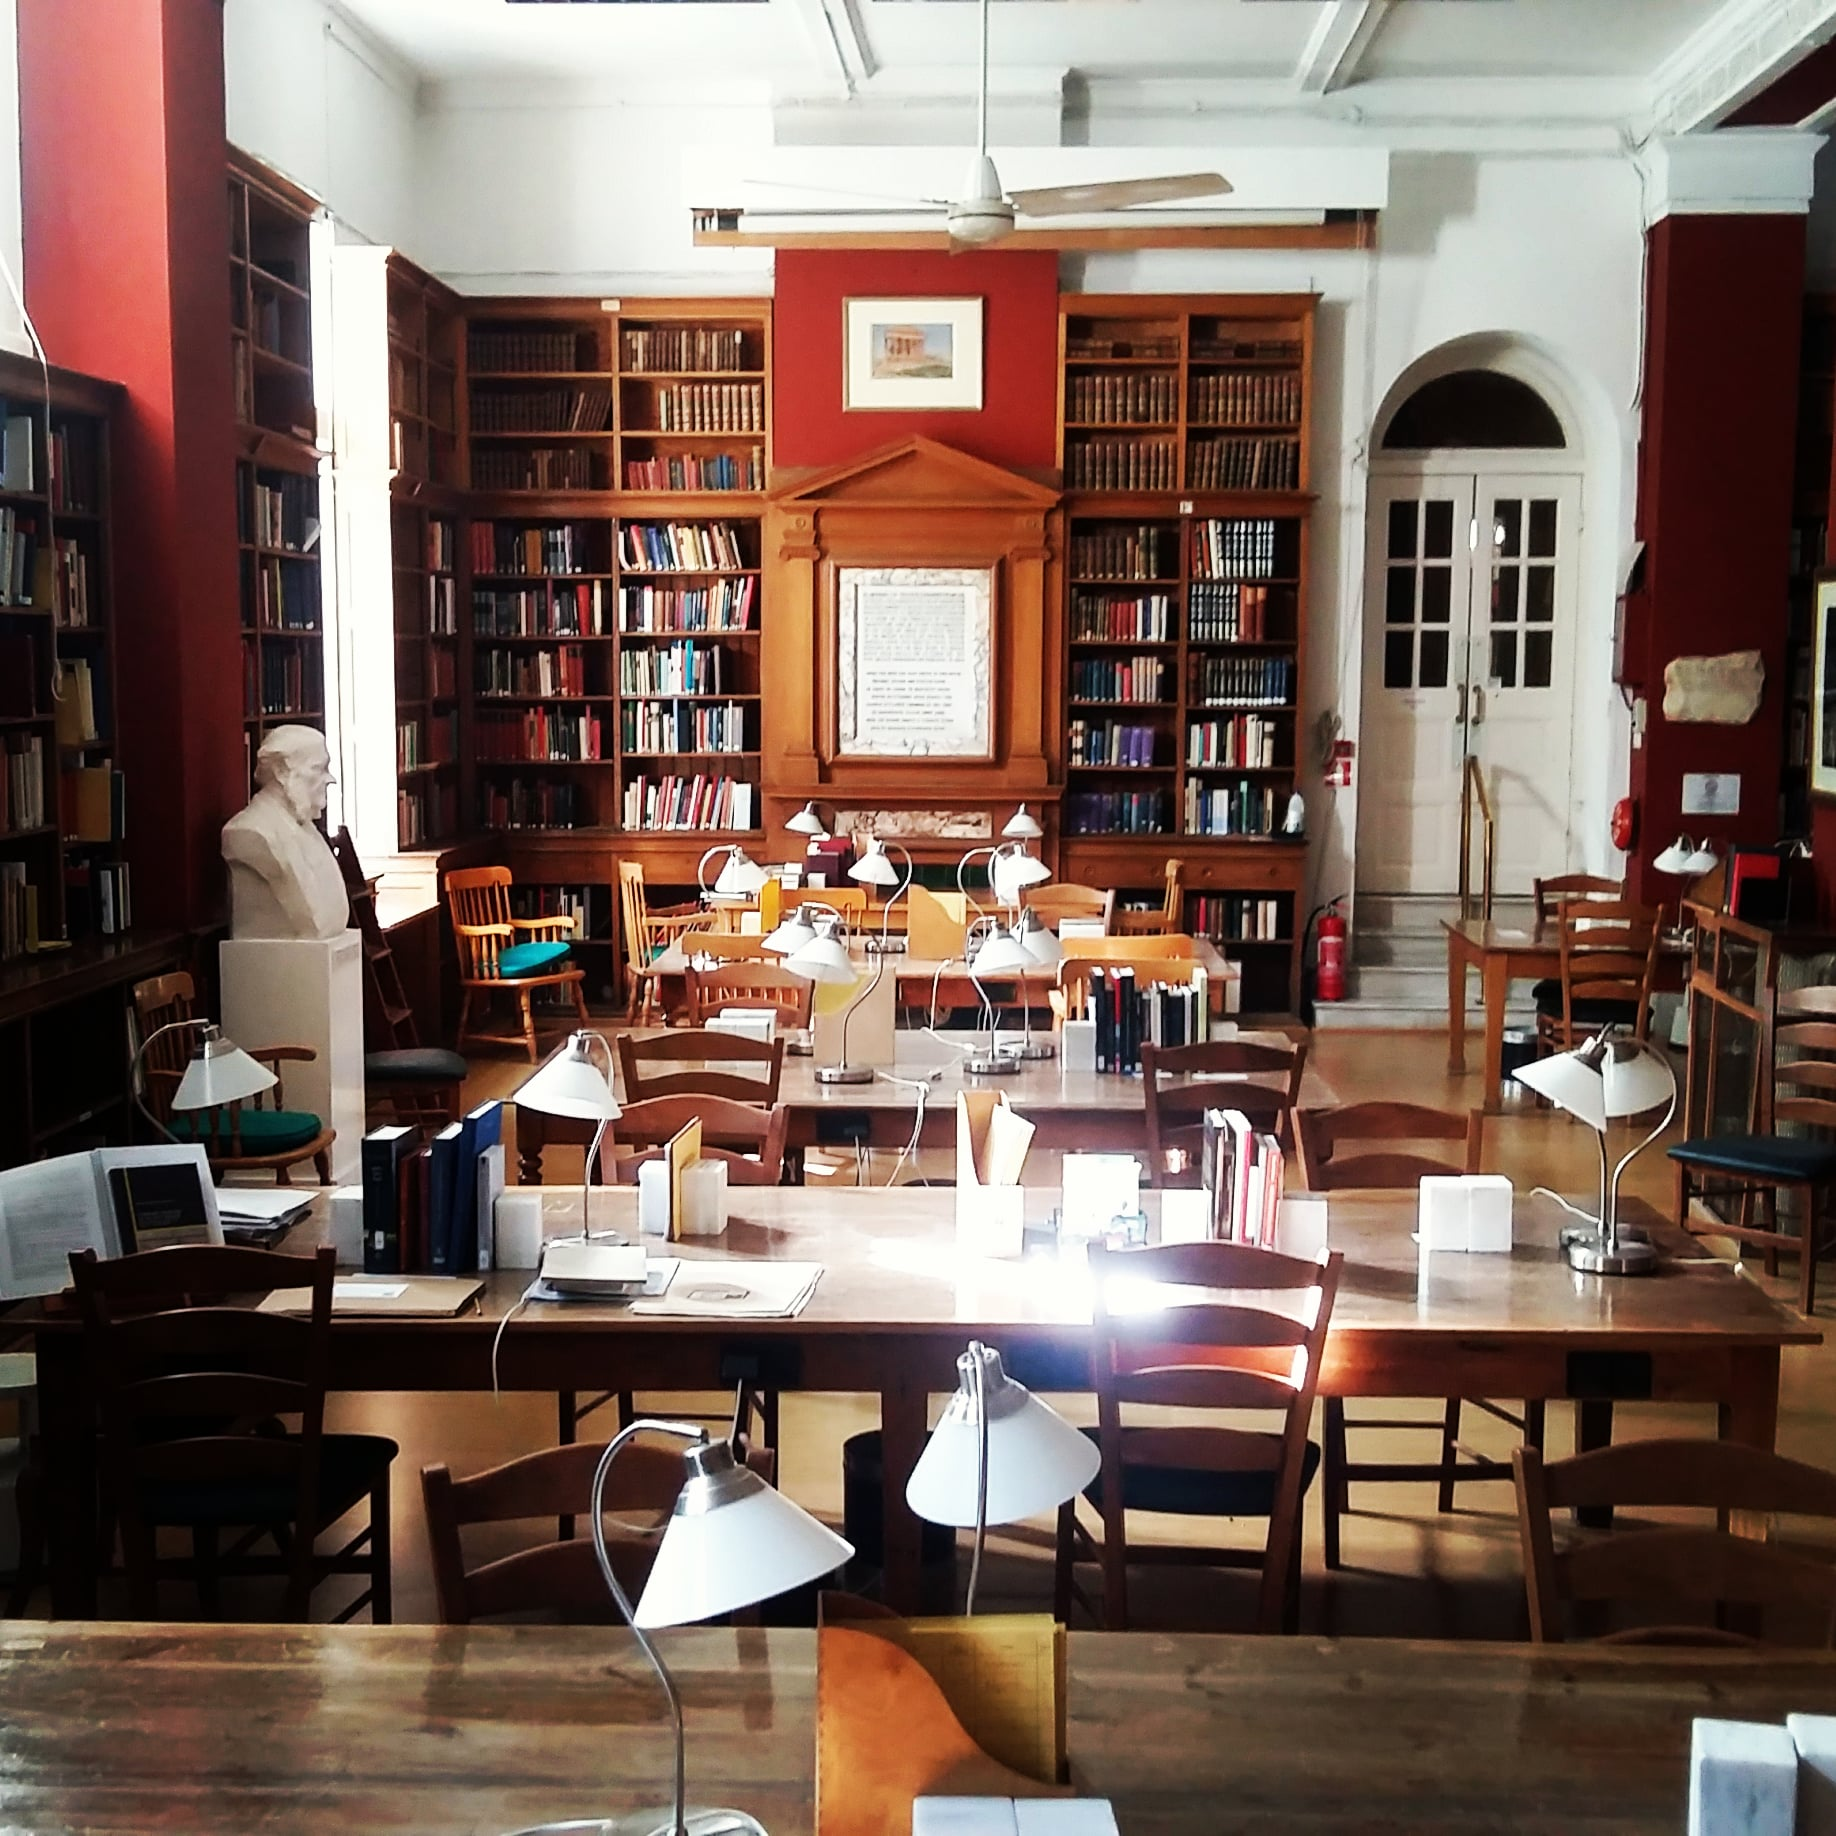 Library reopening 22 June